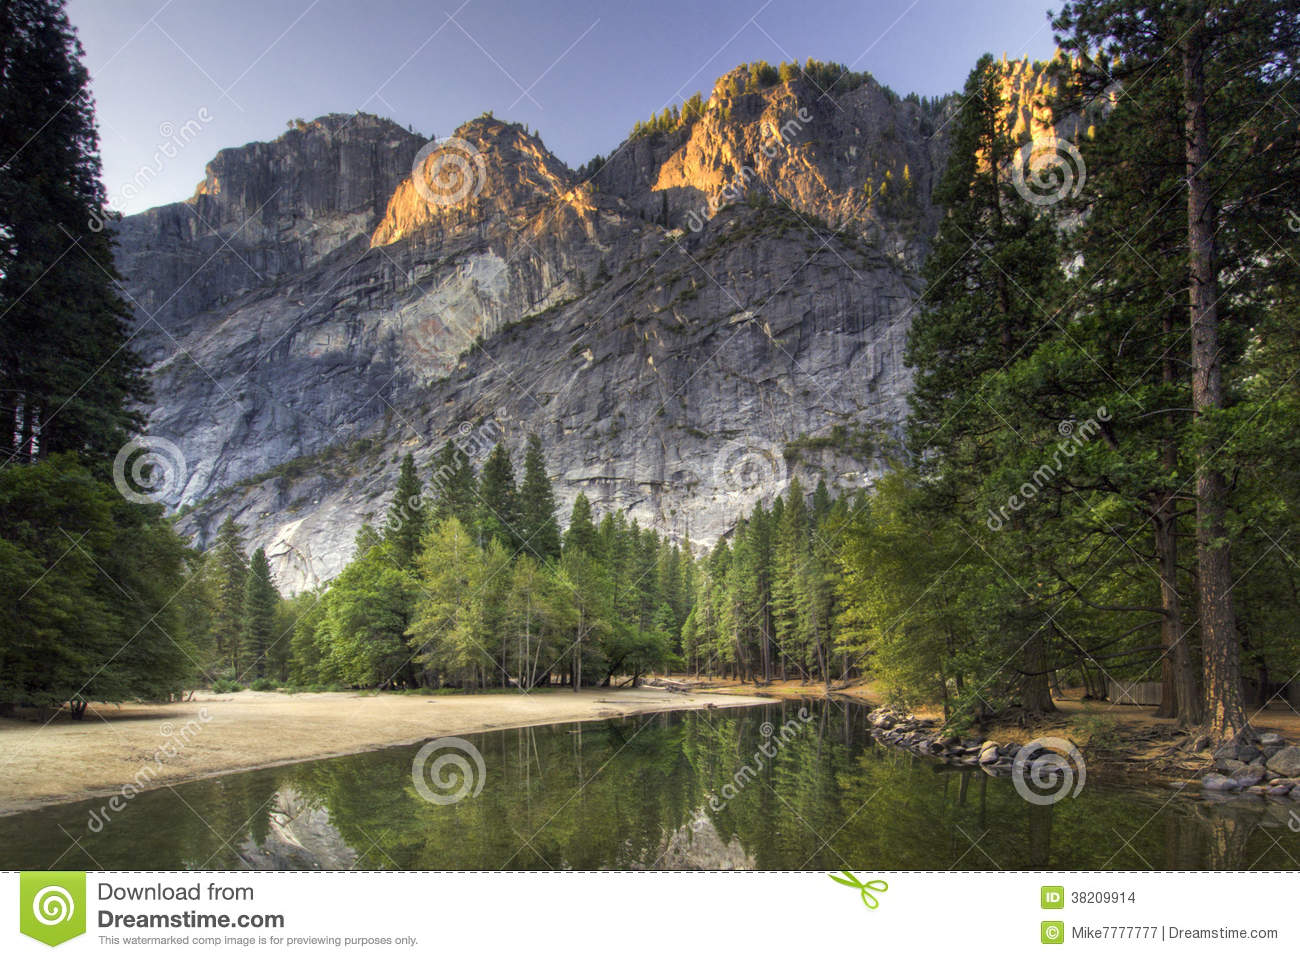 Merced River clipart #8, Download drawings